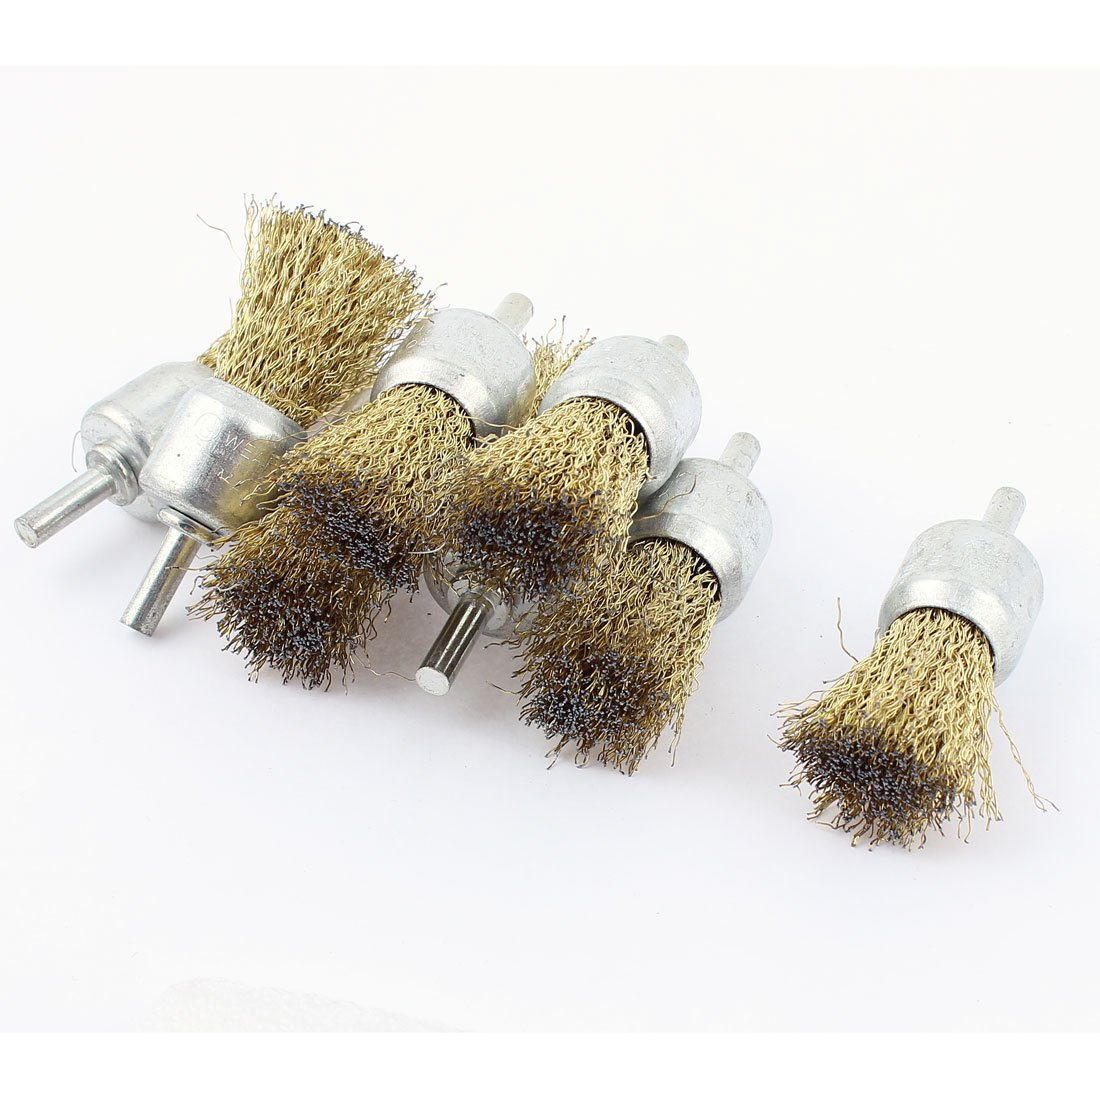 6mm Shank 25mm Dia Crimped Steel Wire Clean Polishing Brushes 8pcs